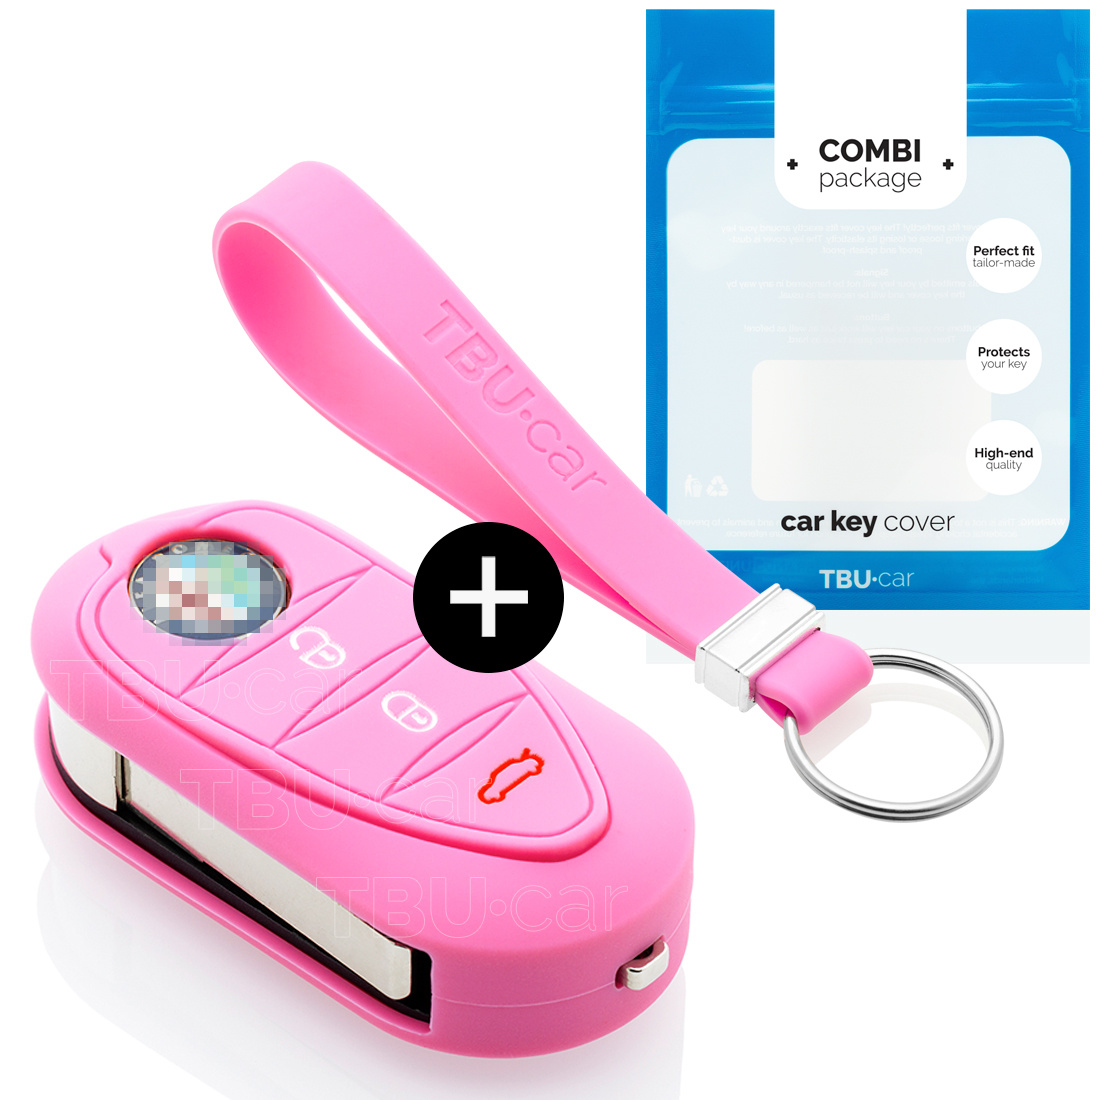 Alfa Romeo Car key cover - Silicone Protective Remote Key Shell - FOB Case Cover - Pink